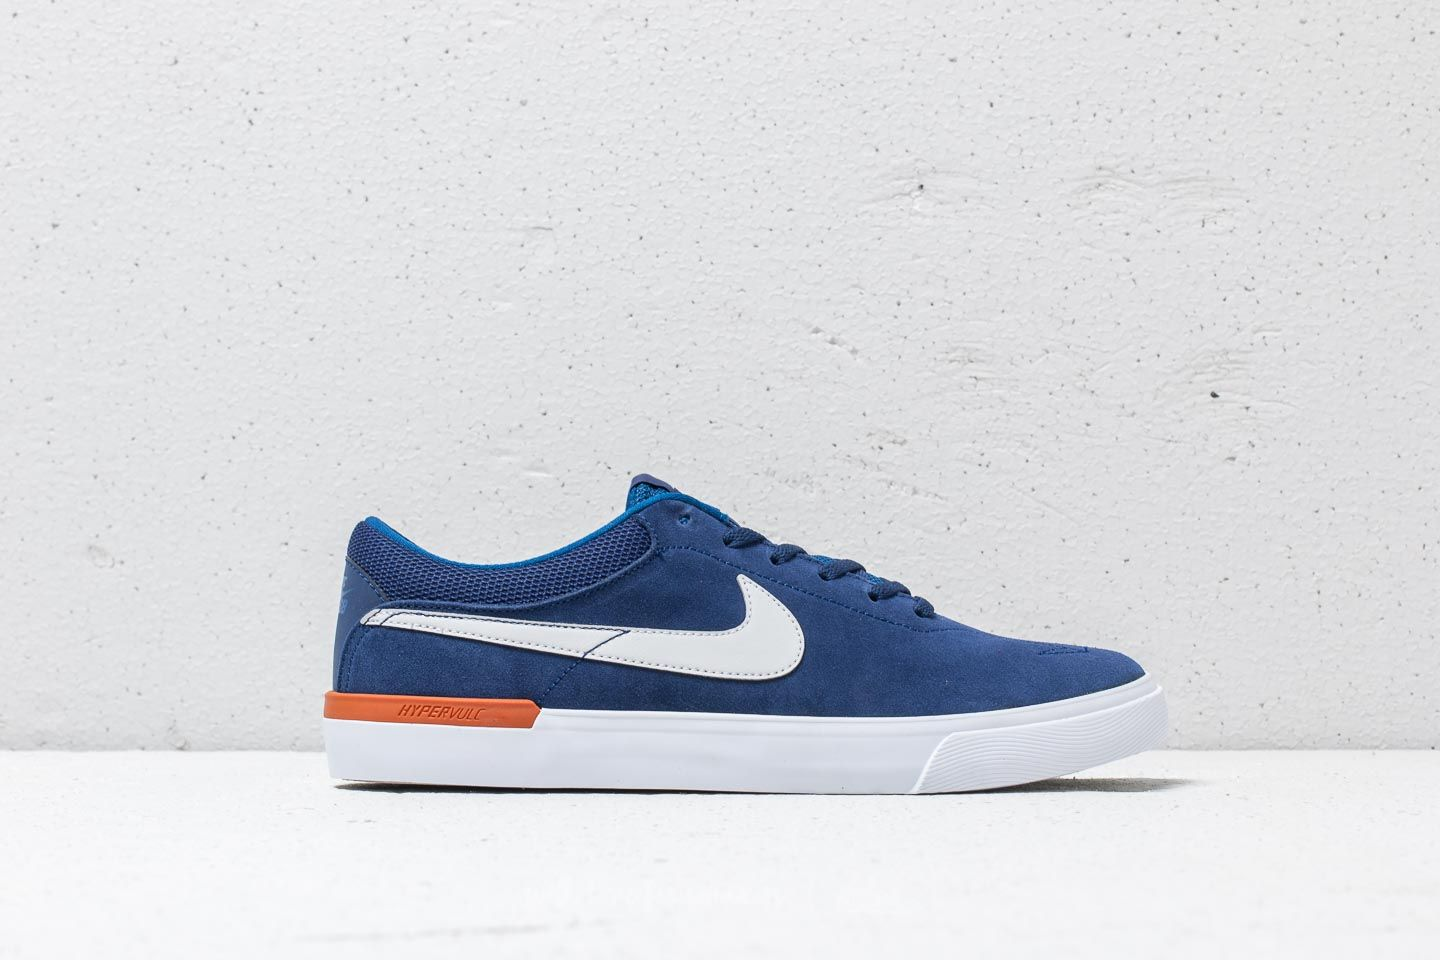 Nike SB Koston Hypervulc Blue Void  Vast Grey-Monarch at a great price 81 06f900080